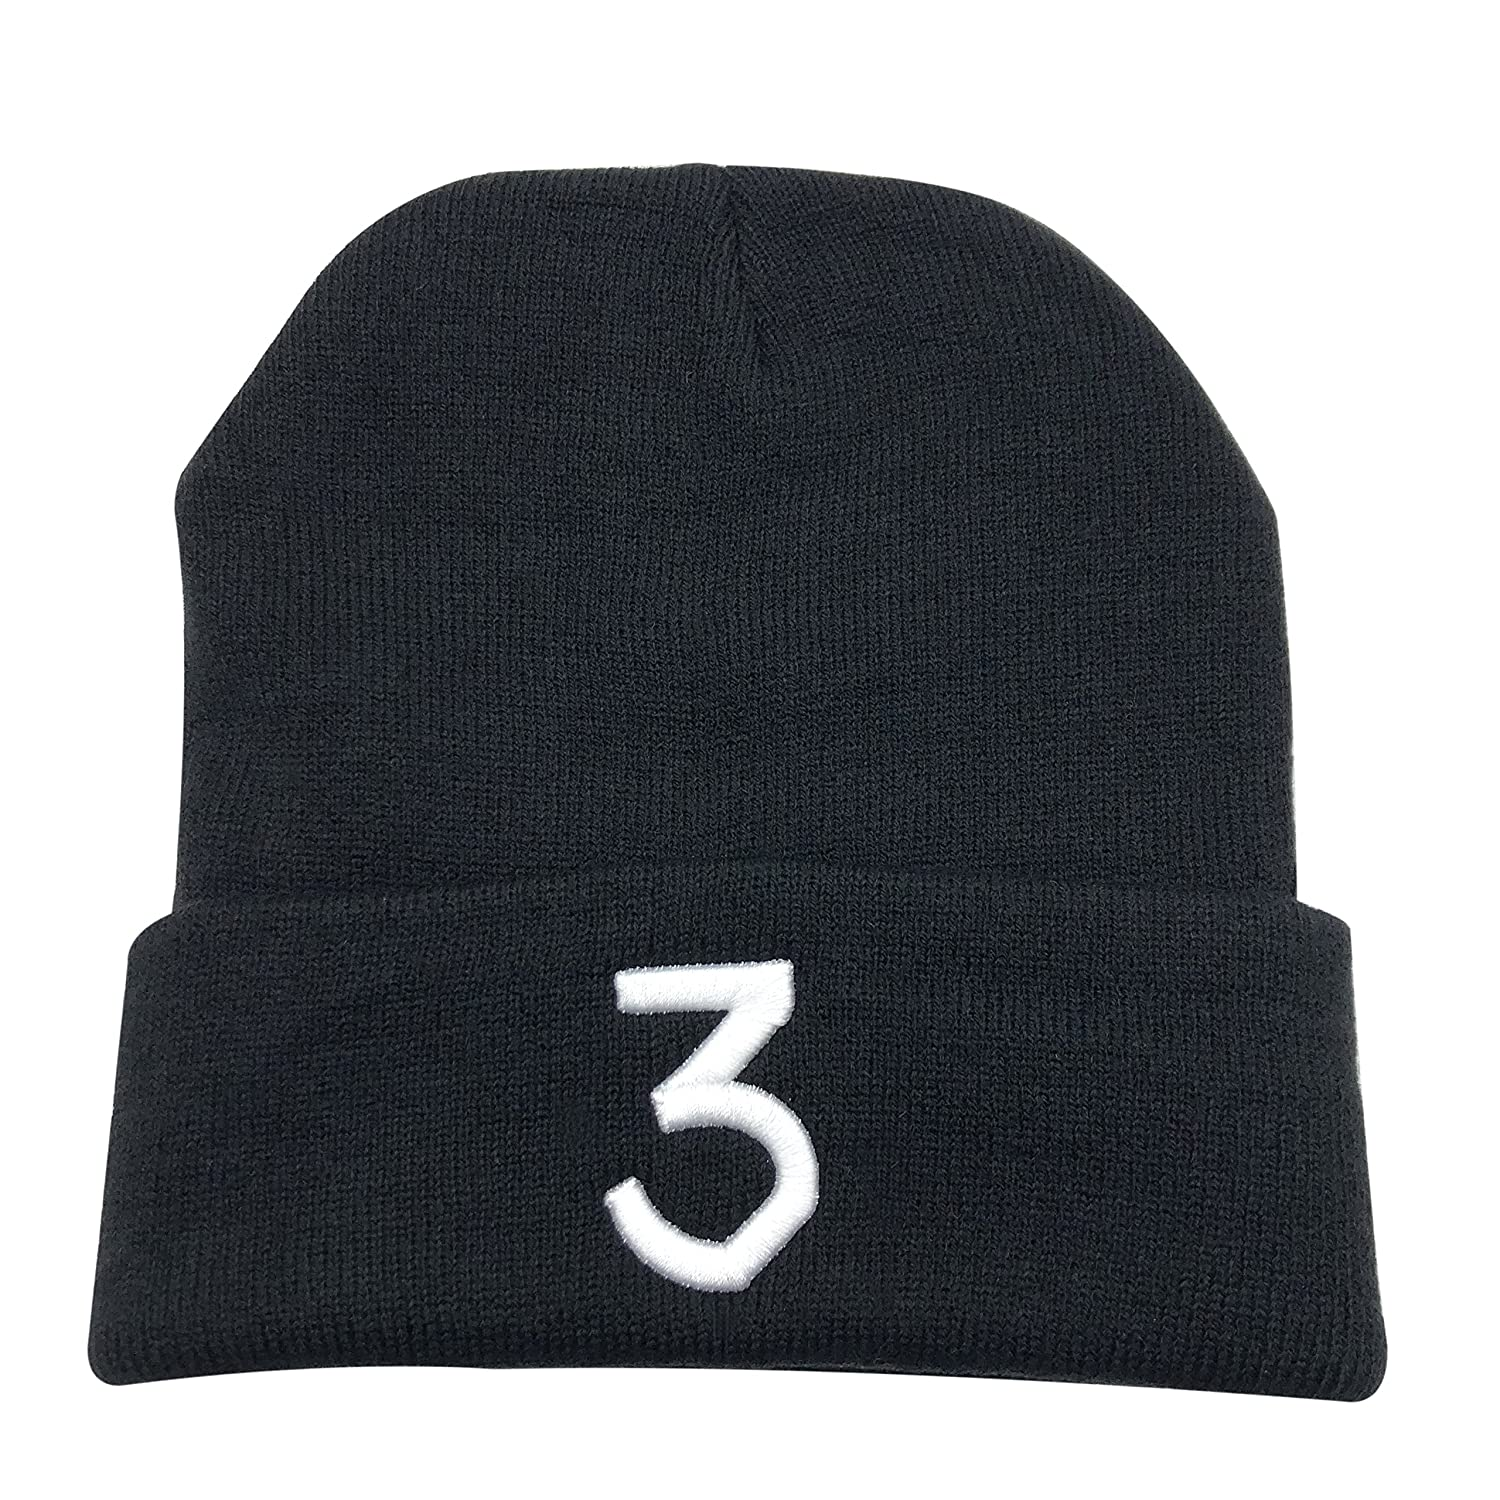 Chance 3 Wang Warm Winter Hat Knit Beanie Skull Cap Embroidered Soft Headwear Unisex